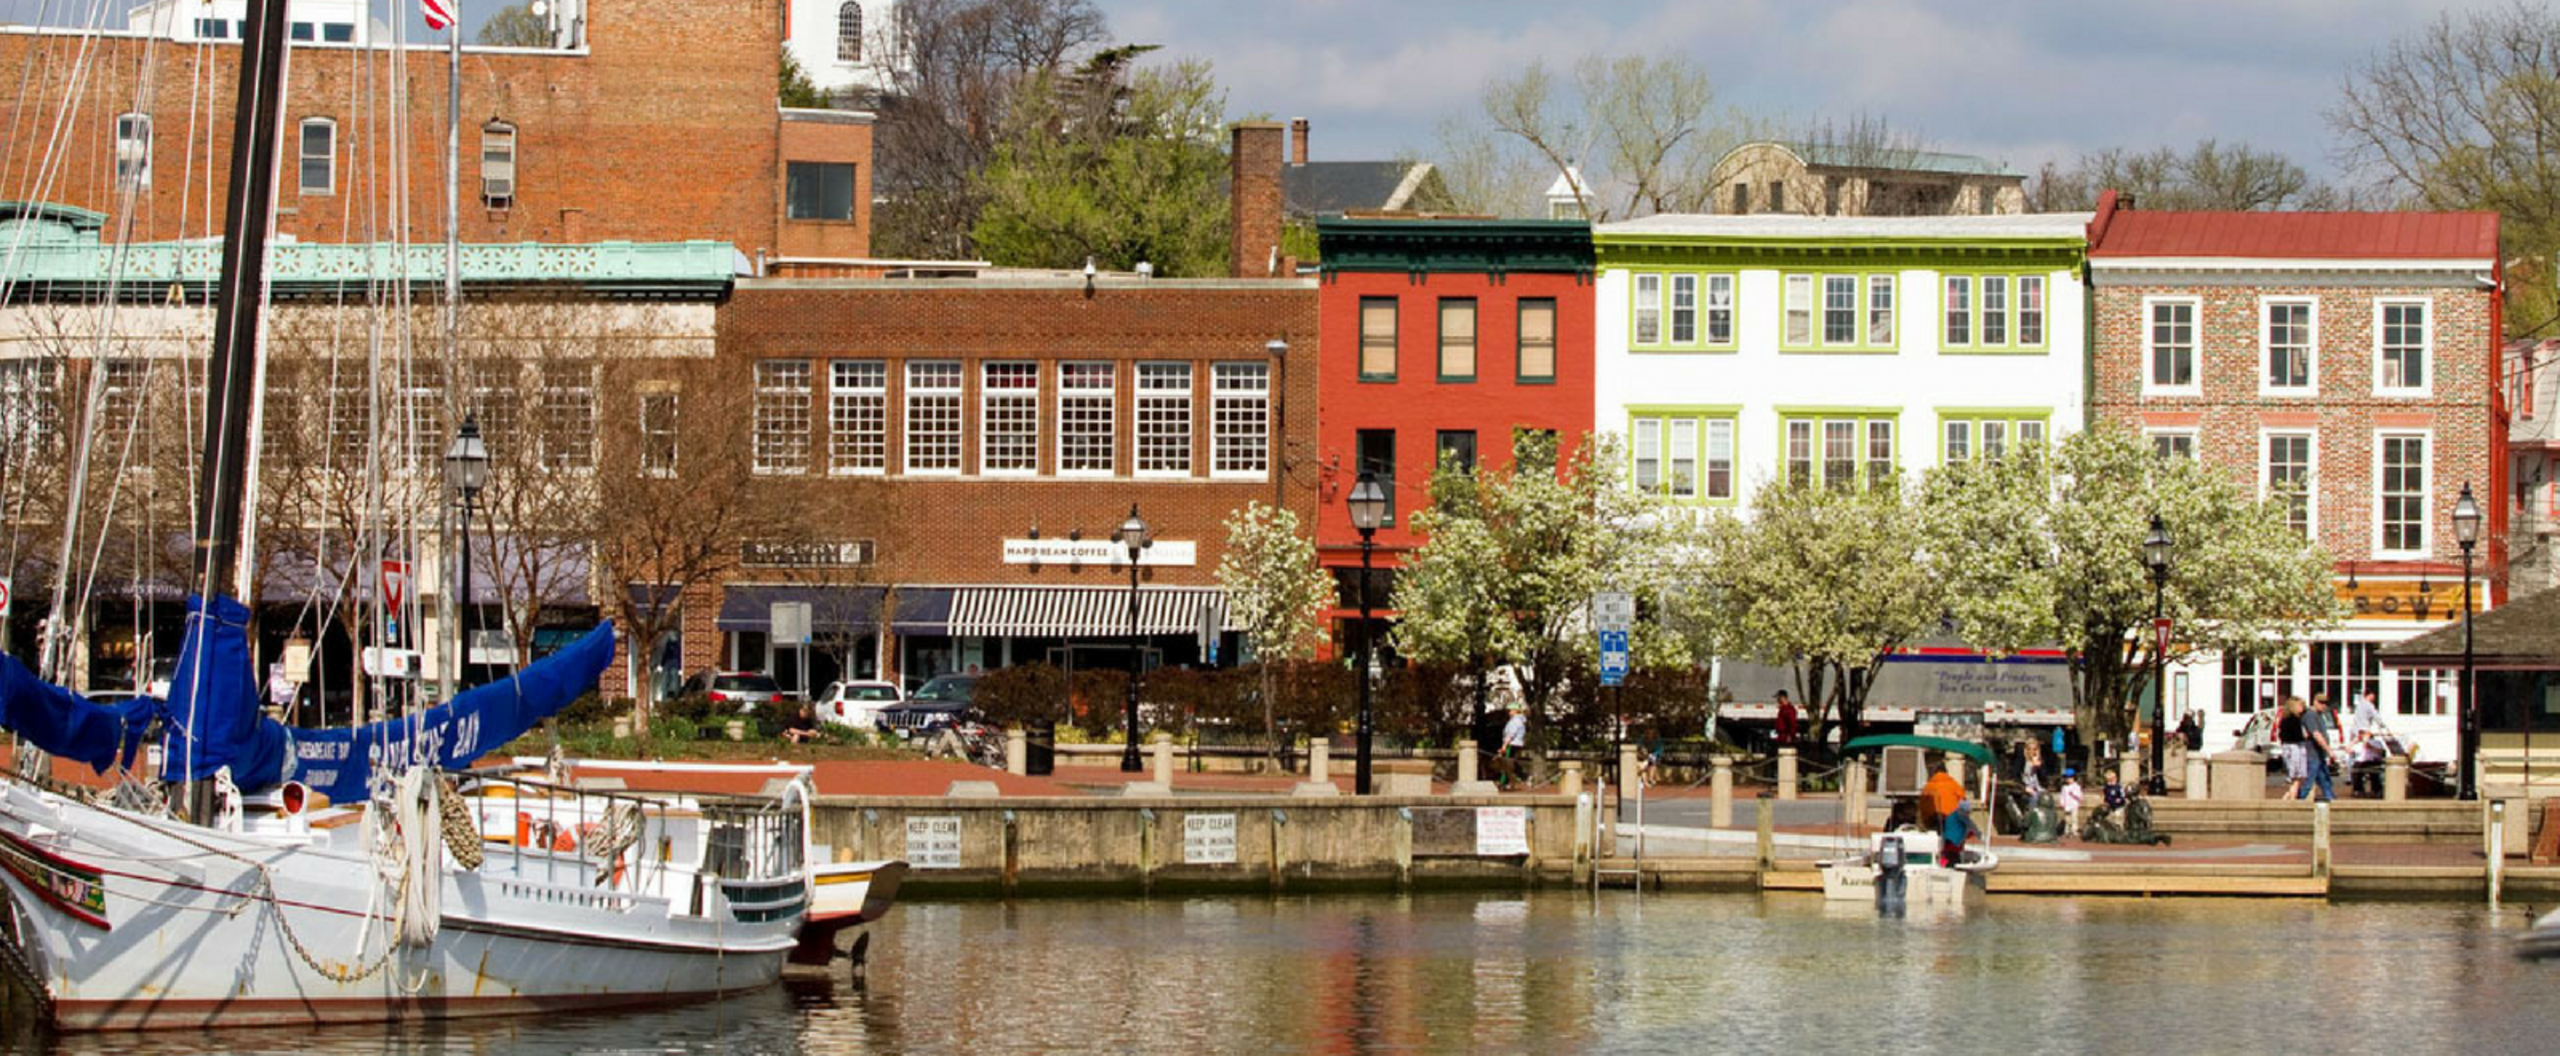 Annapolis, MD ~ Historic, Small Town Charm